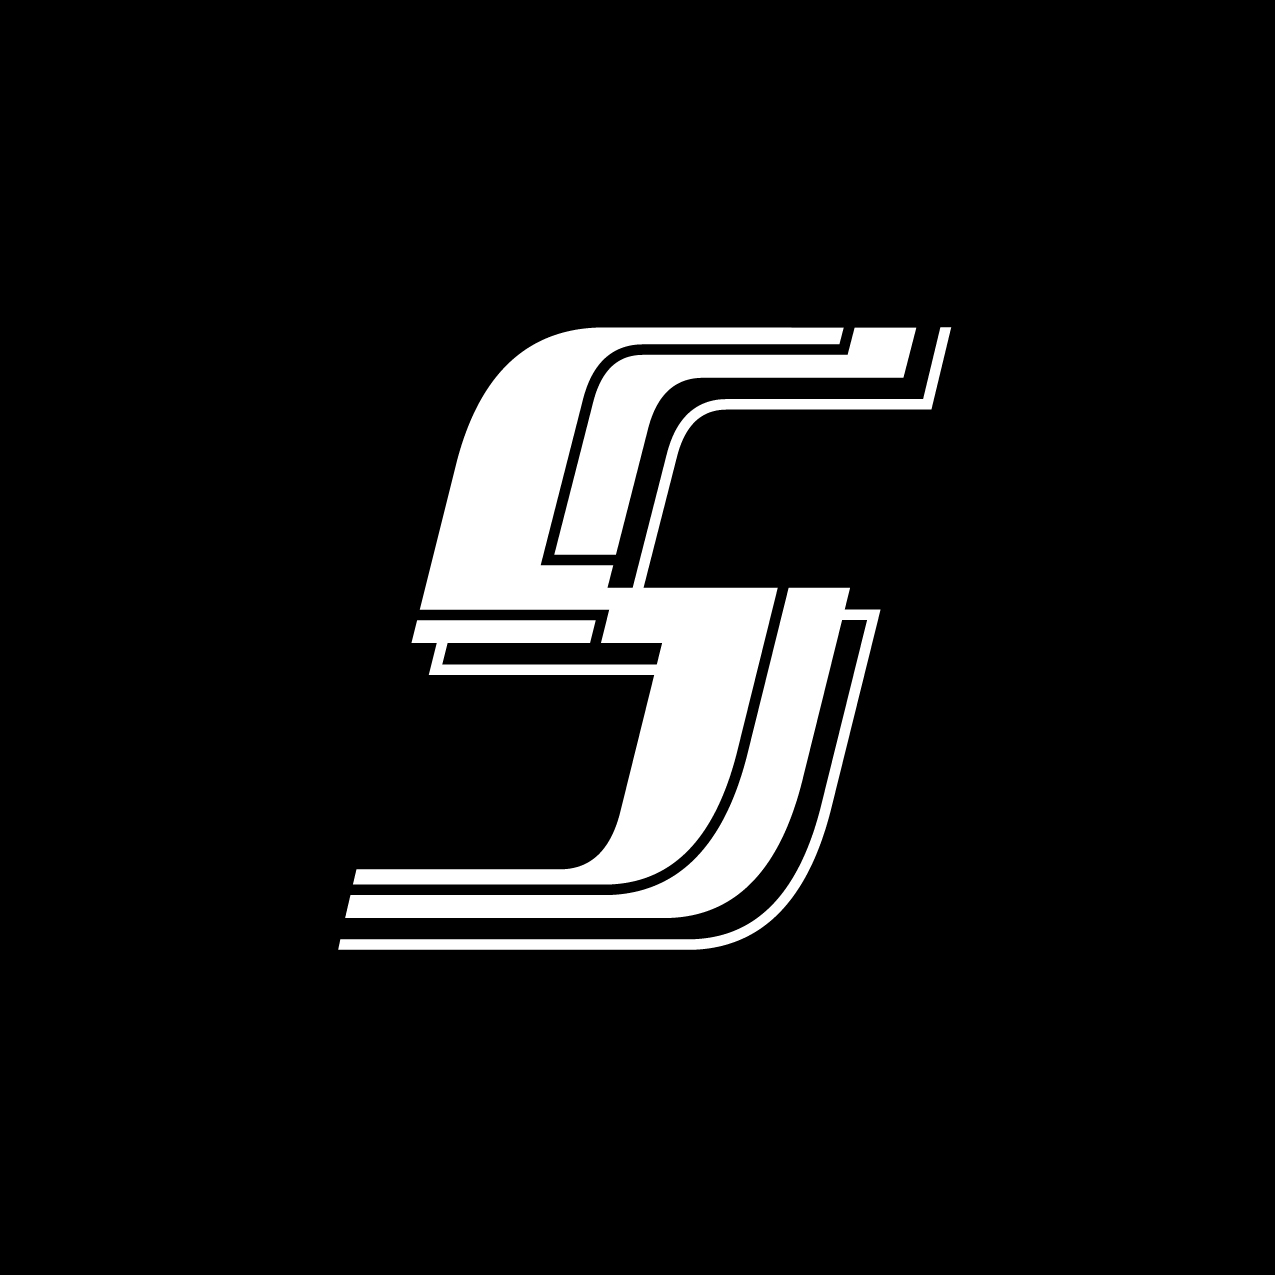 Letter S6 Design by Furia